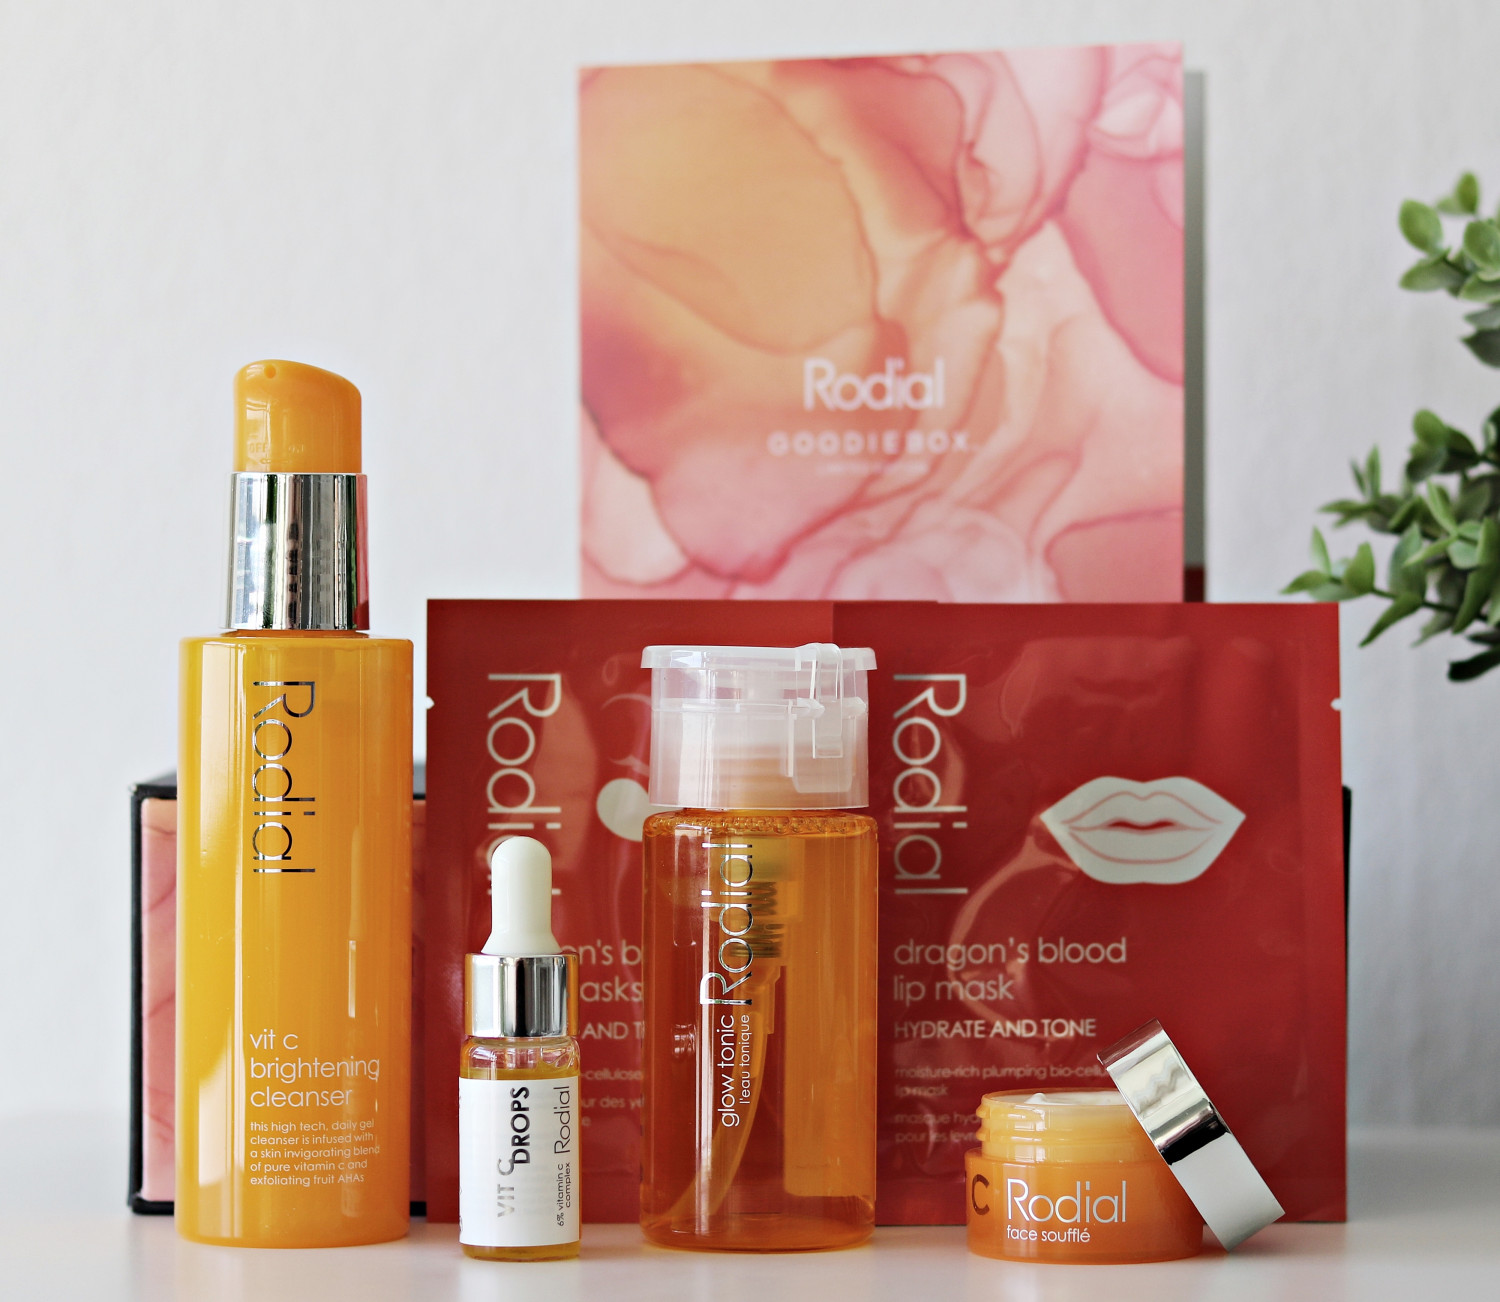 Goodiebox Rodial Limited edition